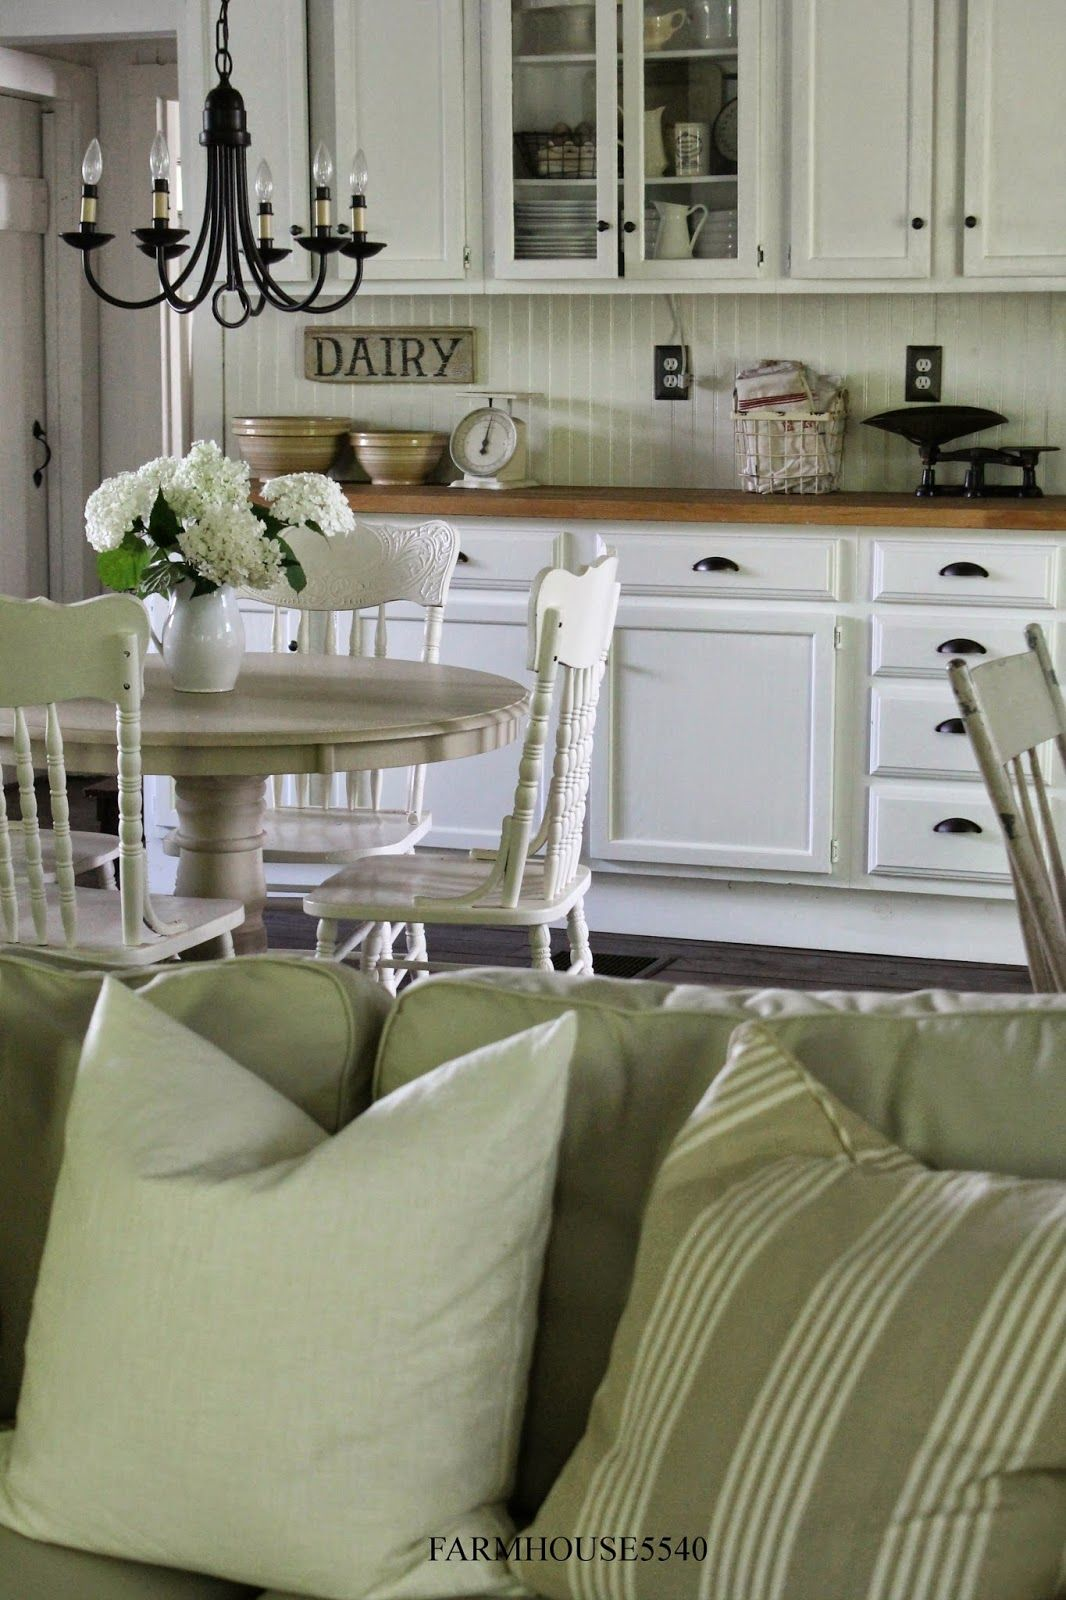 """FARMHOUSE 5540 - Love the dairy sign, the wooden counters and the painted Victorian pressed-back chairs....They all spell """"H-O-M-E"""""""